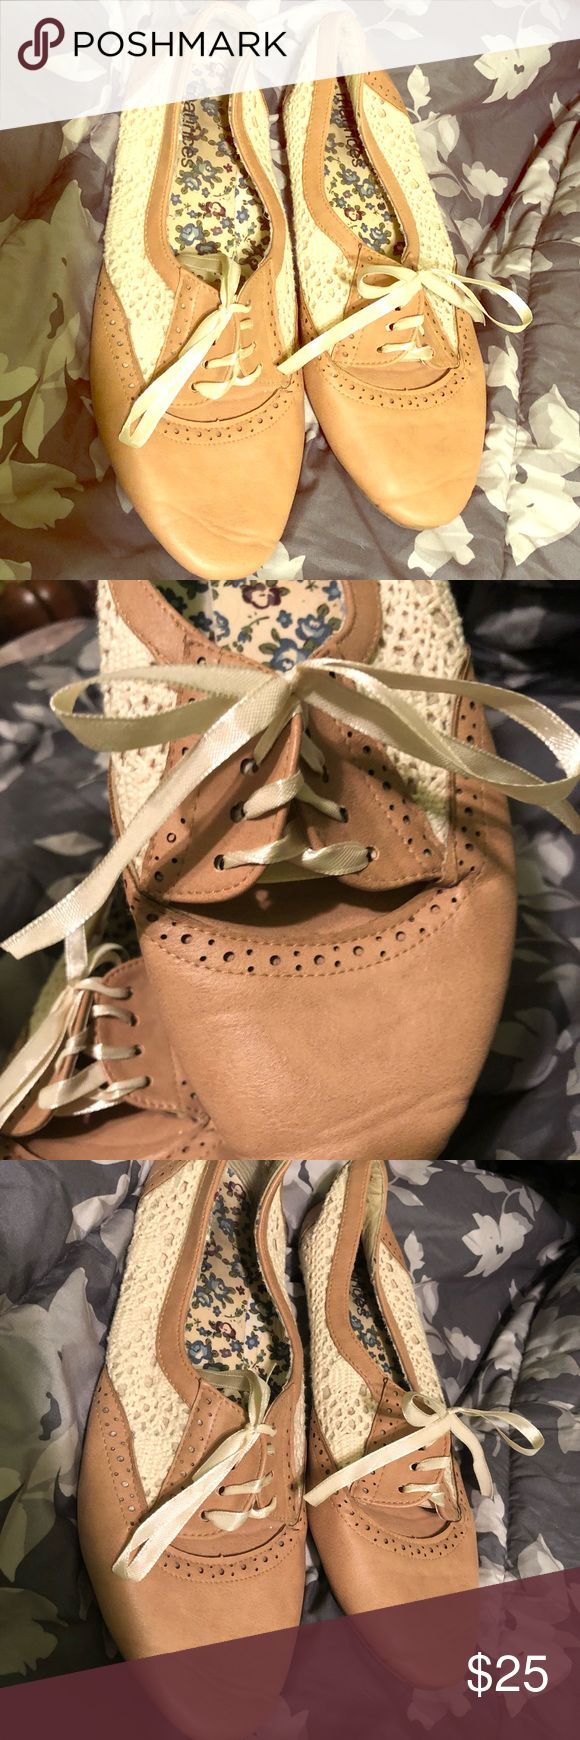 Maurice's Lace Oxfords These shoes are super lightweight and cute! Perfect with any outfit as well 😊 they have only been worn a handful of times and are still in great condition! Maurices Shoes Flats & Loafers